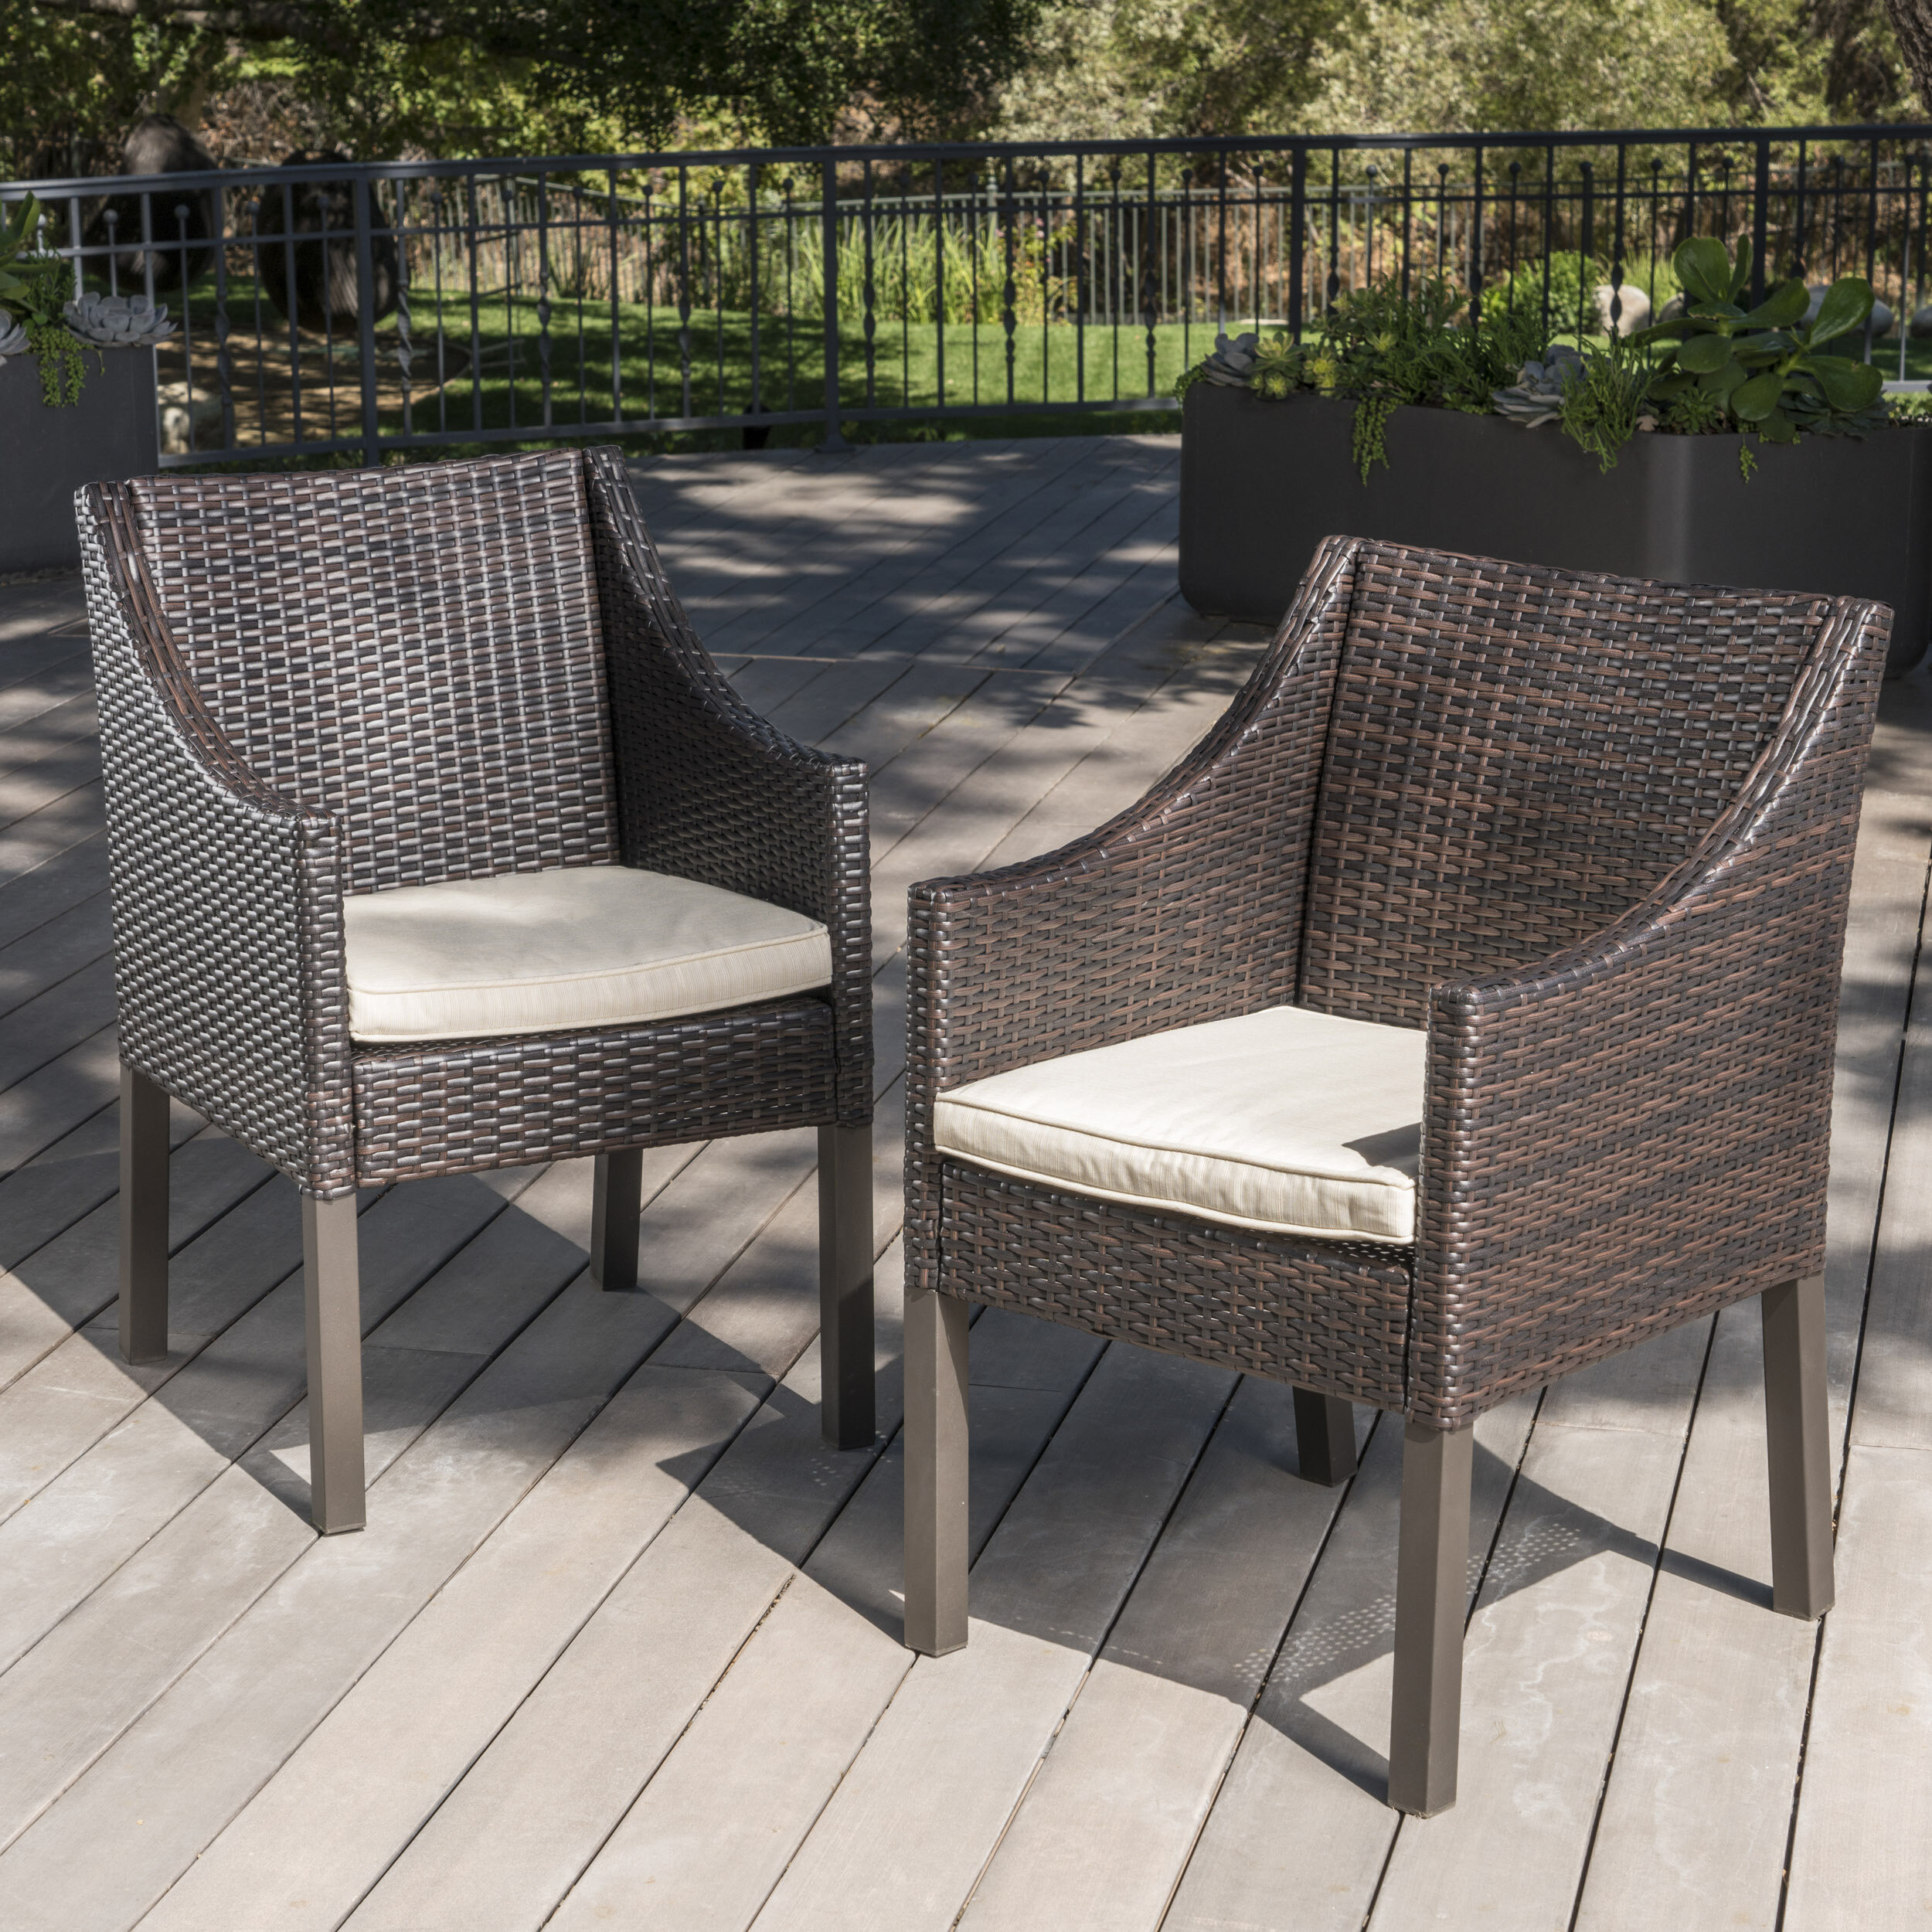 Ivy Bronx Arciniega Outdoor Wicker Patio Dining Chair Wayfair